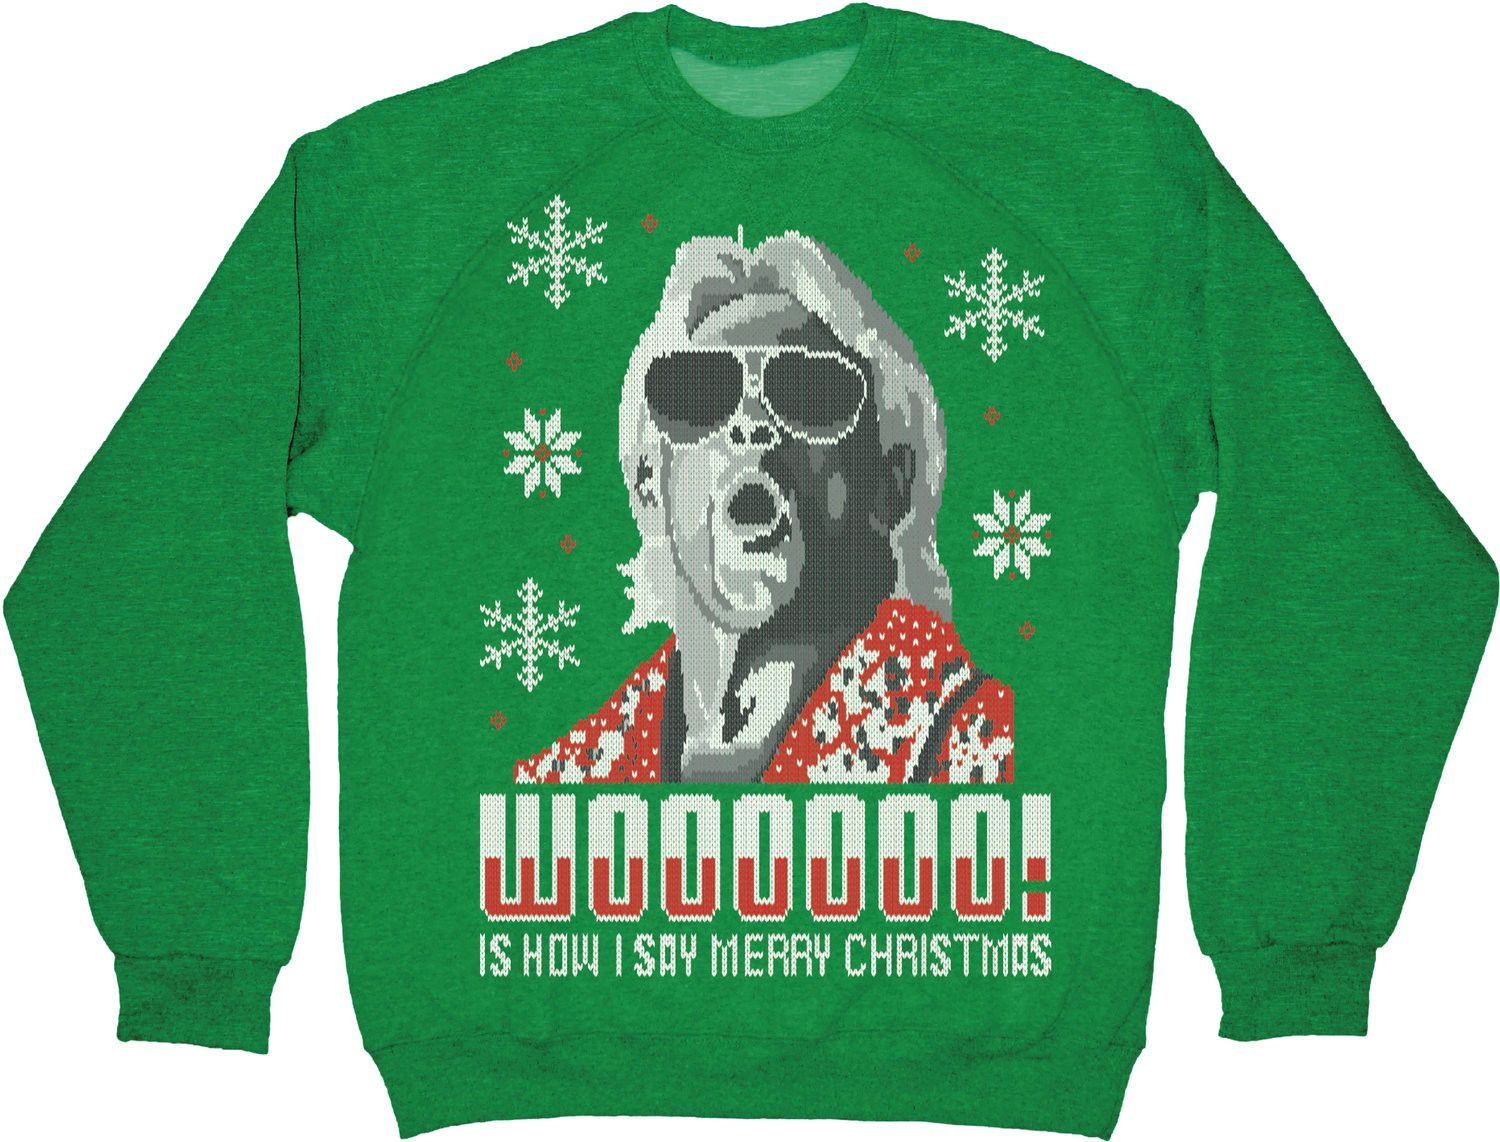 Ric Flair Christmas Sweatshirt